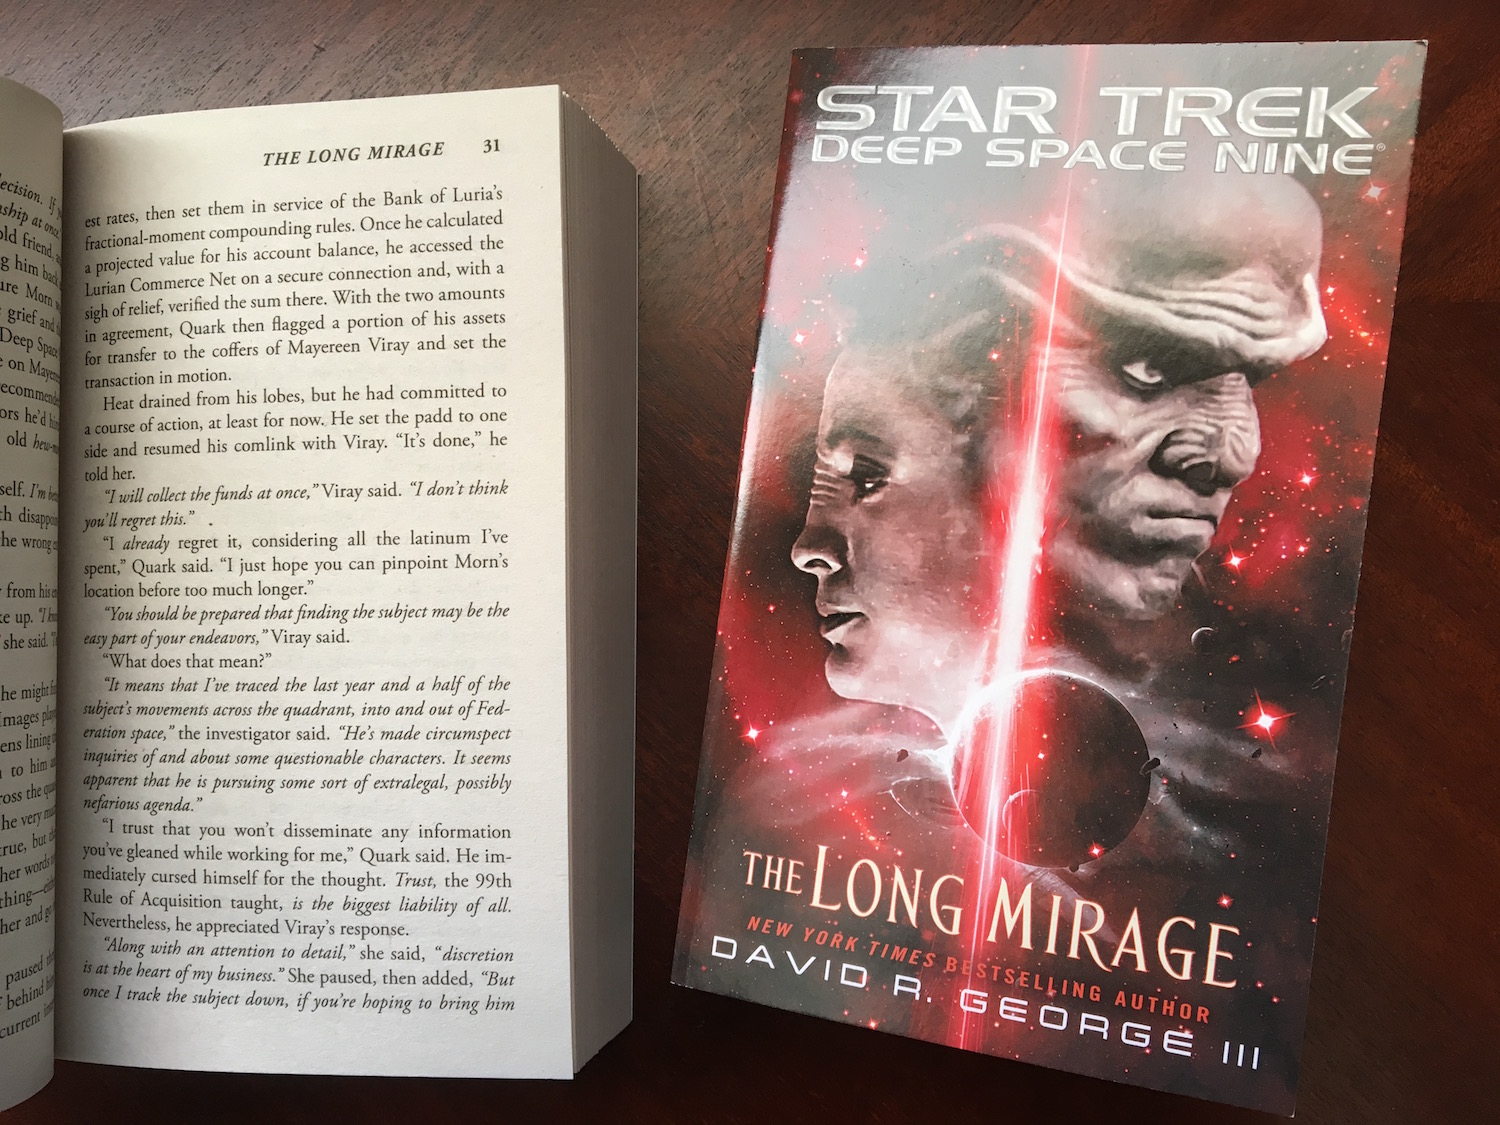 An example of italic type used for remote communication in  Star Trek novels ©2017 David R. George III